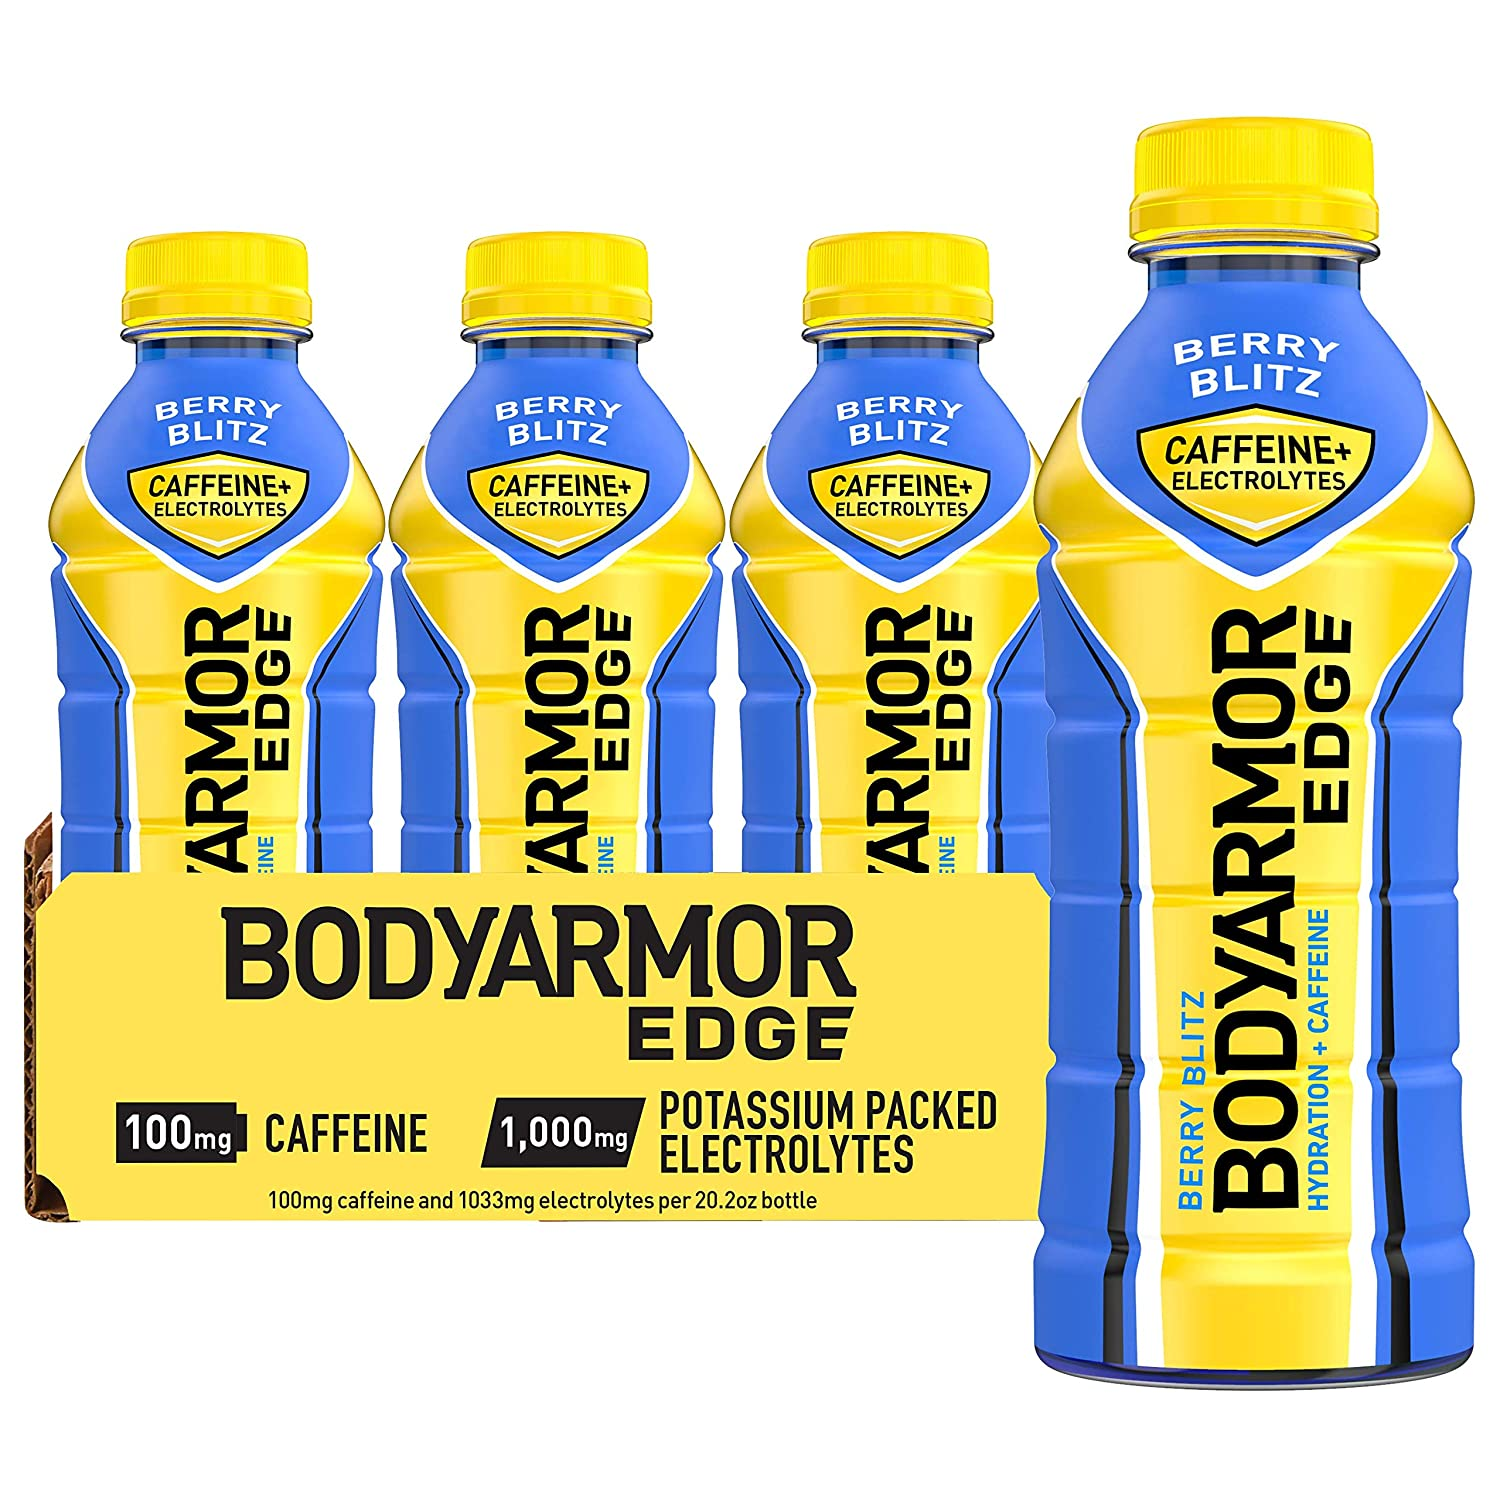 BODYARMOR EDGE Sports Drink with Caffeine, Berry Blitz, Potassium-Packed Electrolytes, Caffeine Boost, Natural Flavors With Vitamins, Perfect for Athletes 20.2 Fl Oz (Pack of 12)